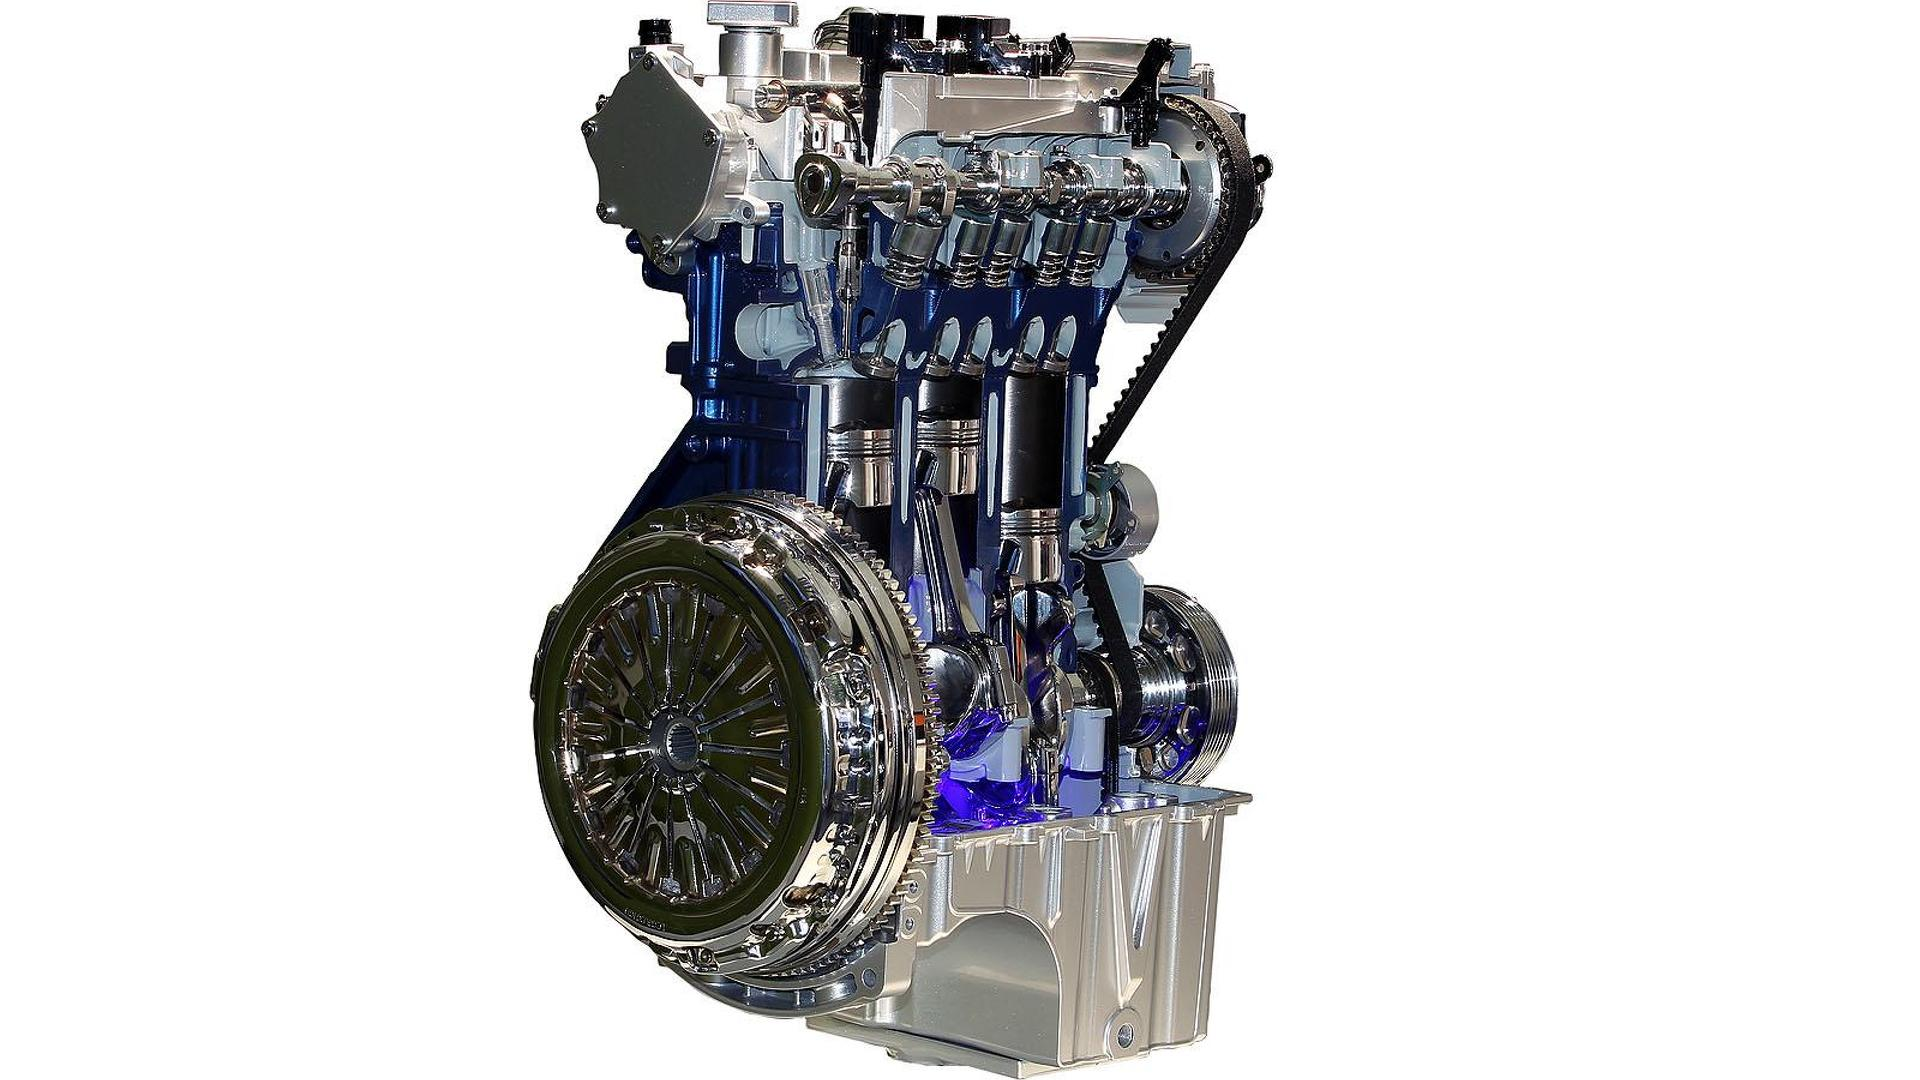 Ford details the 1.0-liter EcoBoost engine